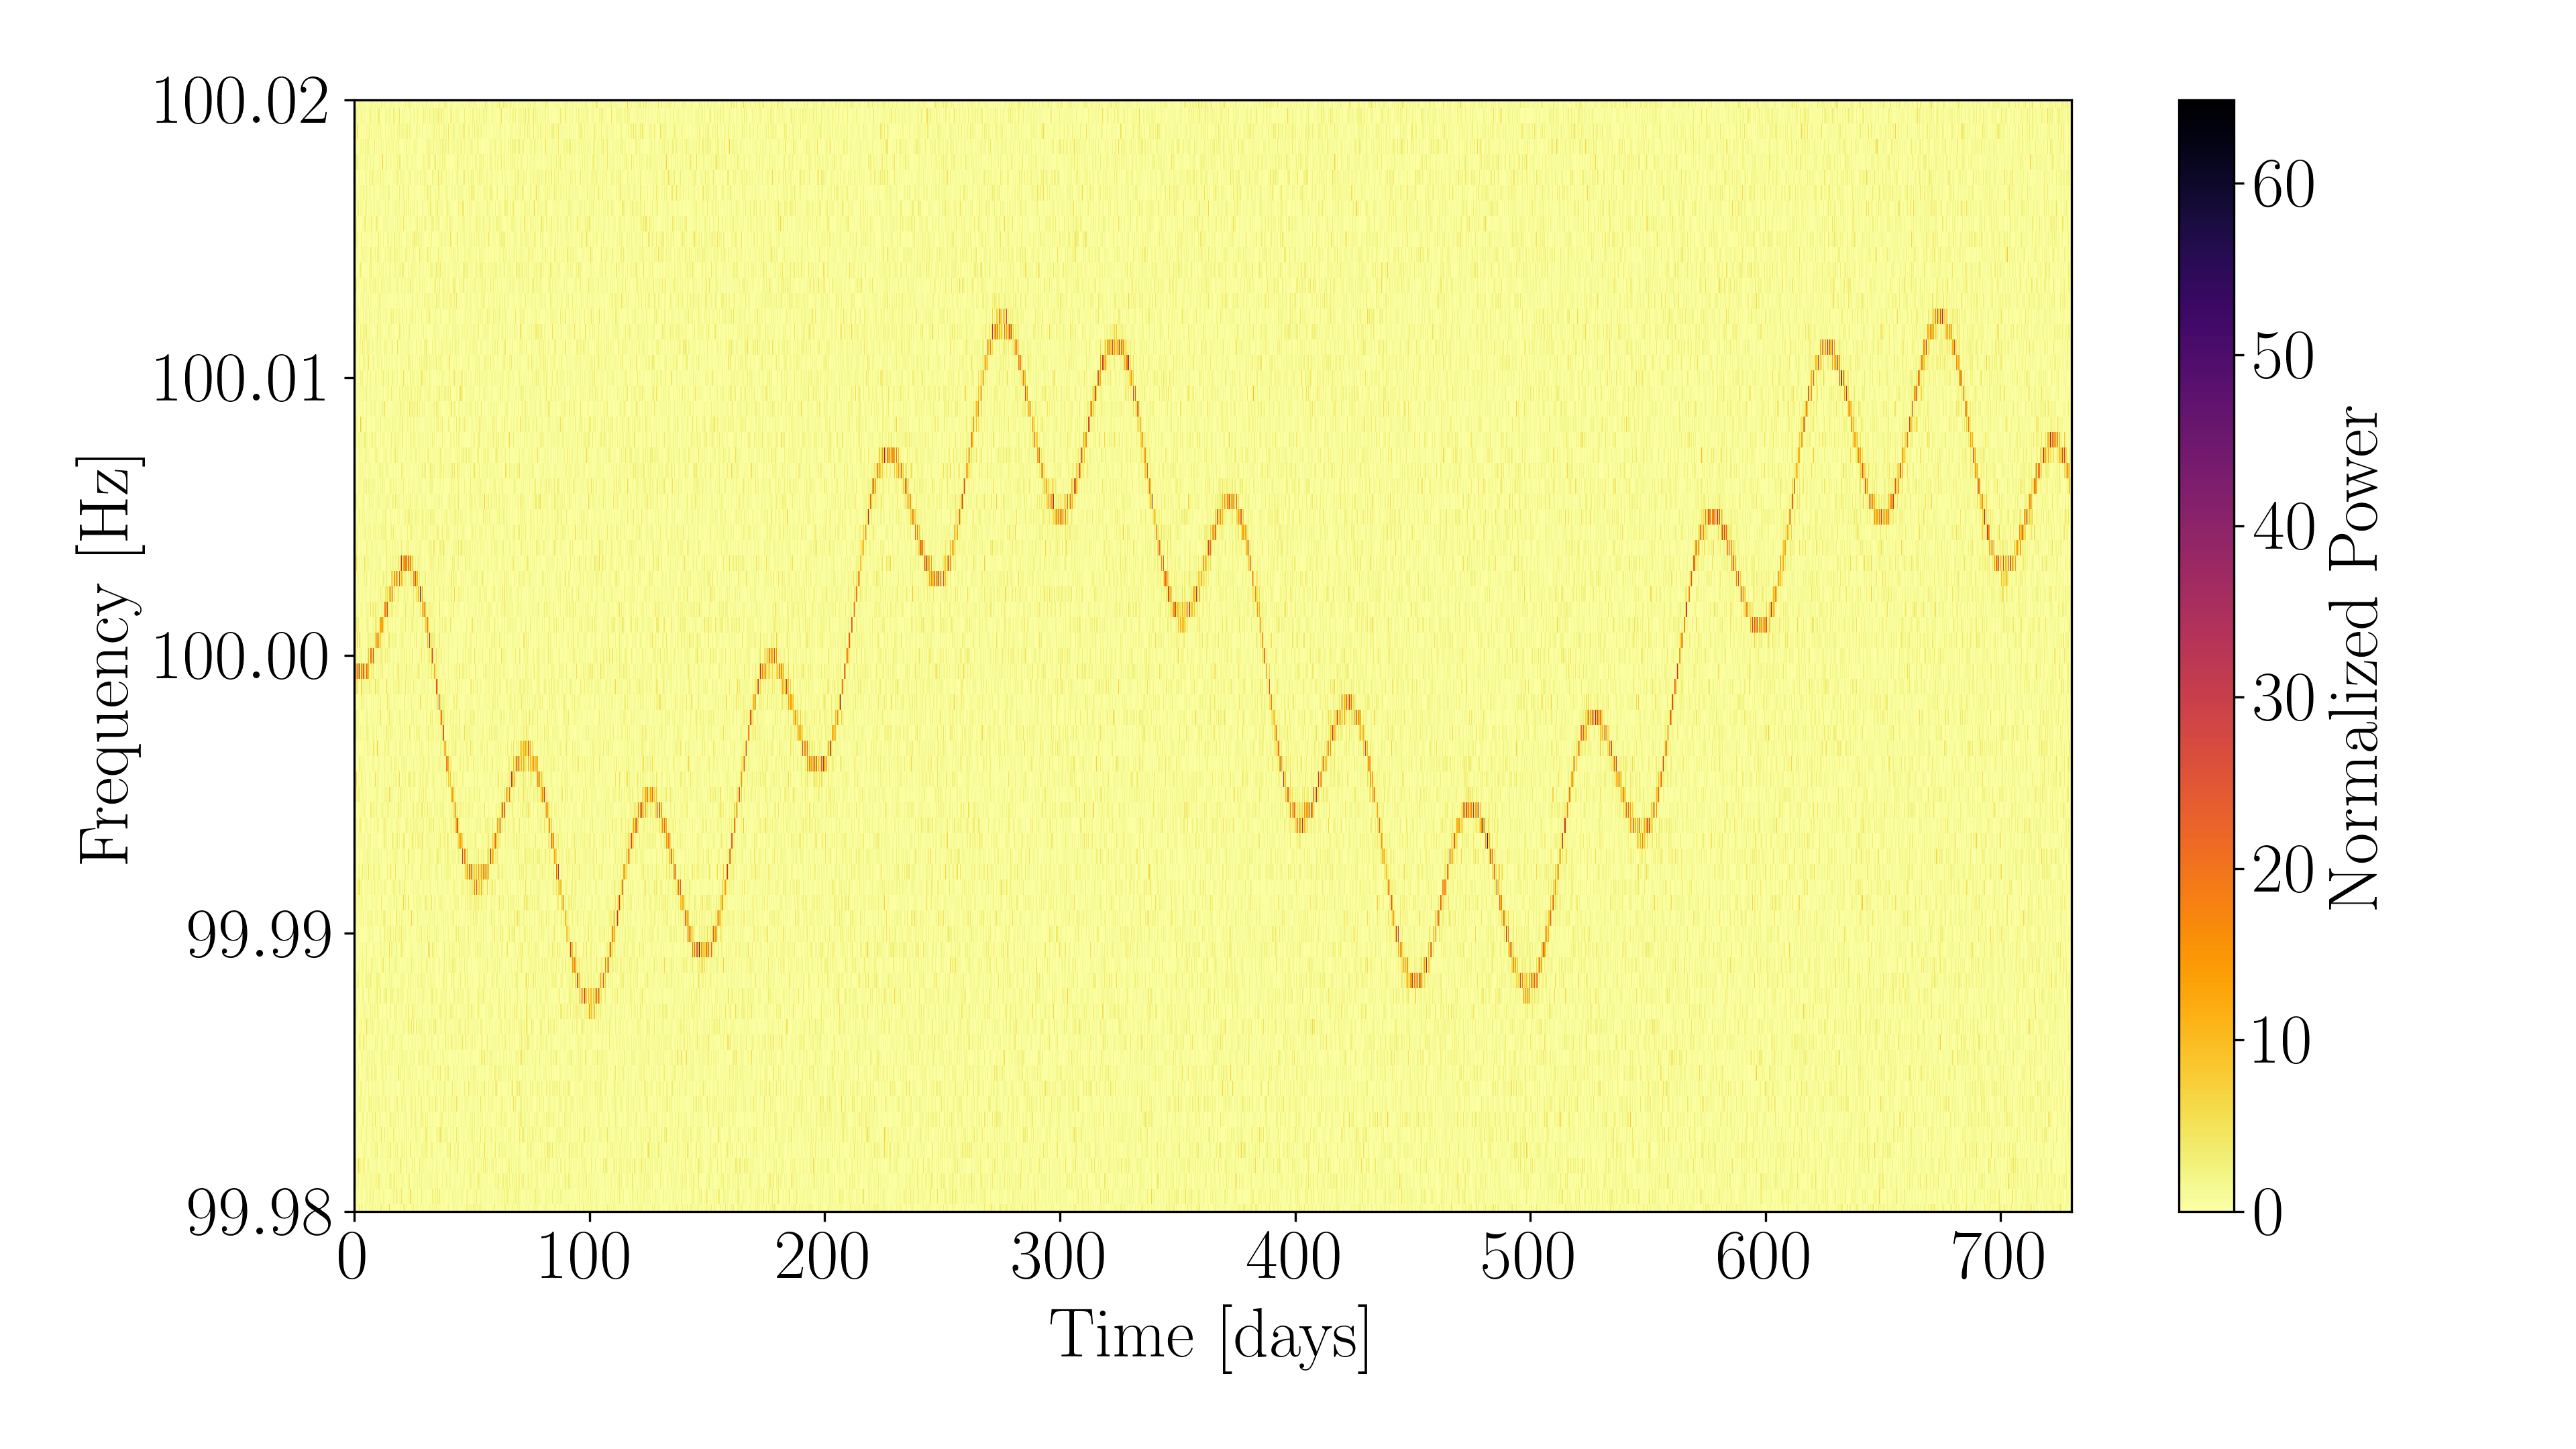 The spectrogram shows the simulation of the signal emitted by a deformed neutron stars spinning 50 times per second and orbiting a companion with an orbital period of 50 days. The overall frequency scale, 100 Hz, is given by twice the rotational frequency of the body. The widest oscillations, with periodicity of 365 days, correspond to the doppler modulation induced by the orbital motion of the Earth around the sun. The narrower ones, with a periodicity of 50 days, correspond to the orbital motion of the neutron star around its companion.